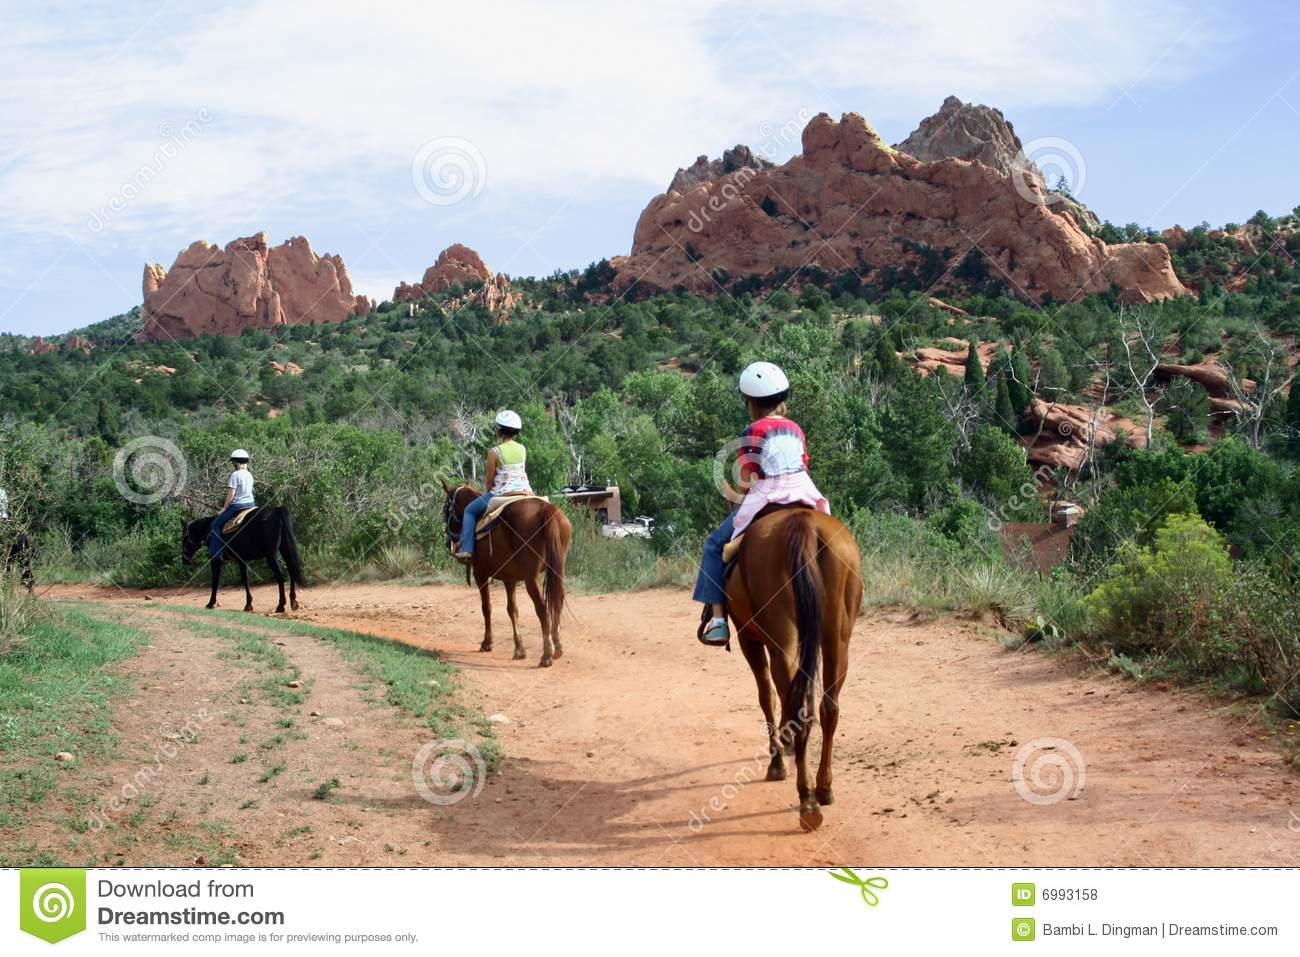 Horseback riding in the garden of the gods royalty free Garden of the gods horseback riding